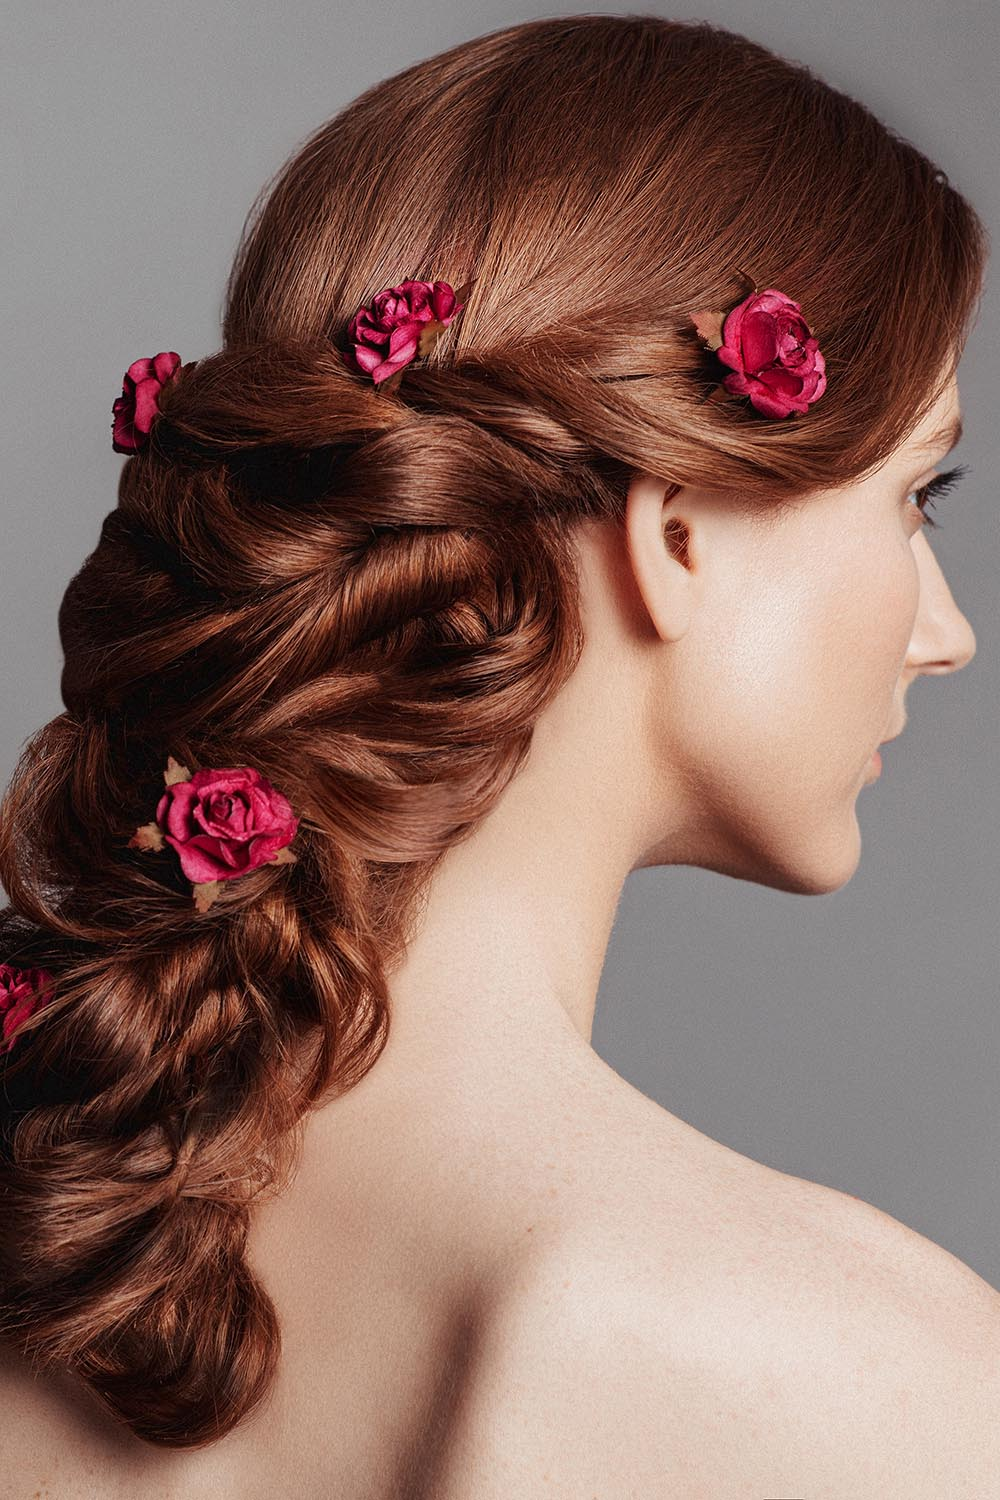 Hairstyling Course for Makeup Artists 02.jpg